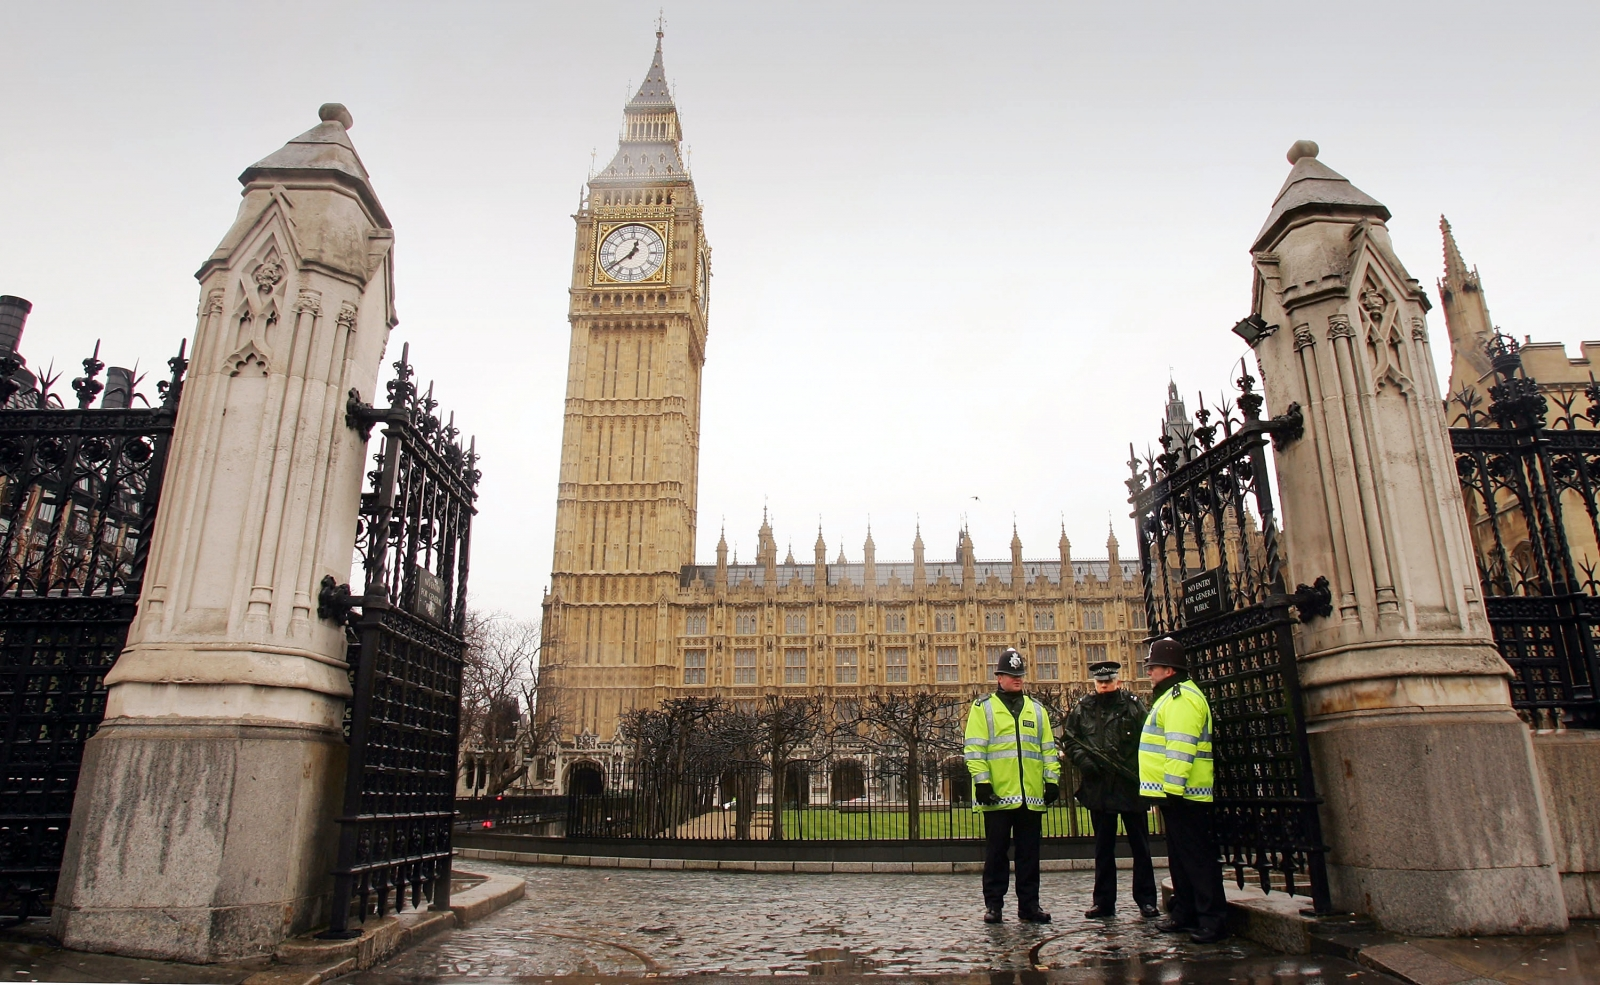 British lawmakers hit by cyber security attack on their email